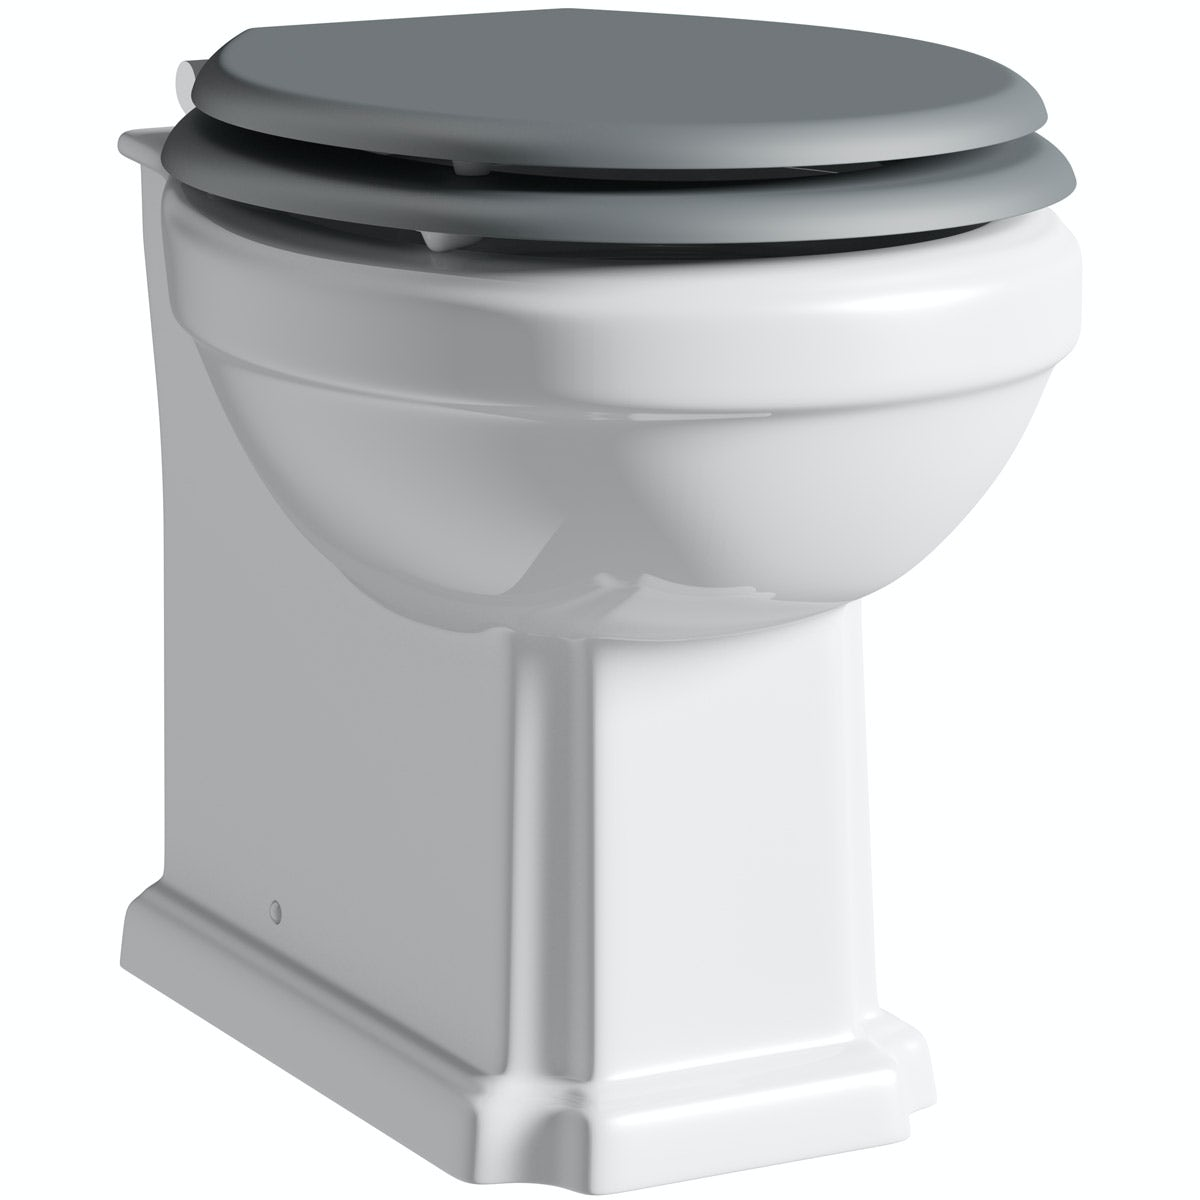 The Bath Co. Dulwich back to wall toilet with white wooden seat